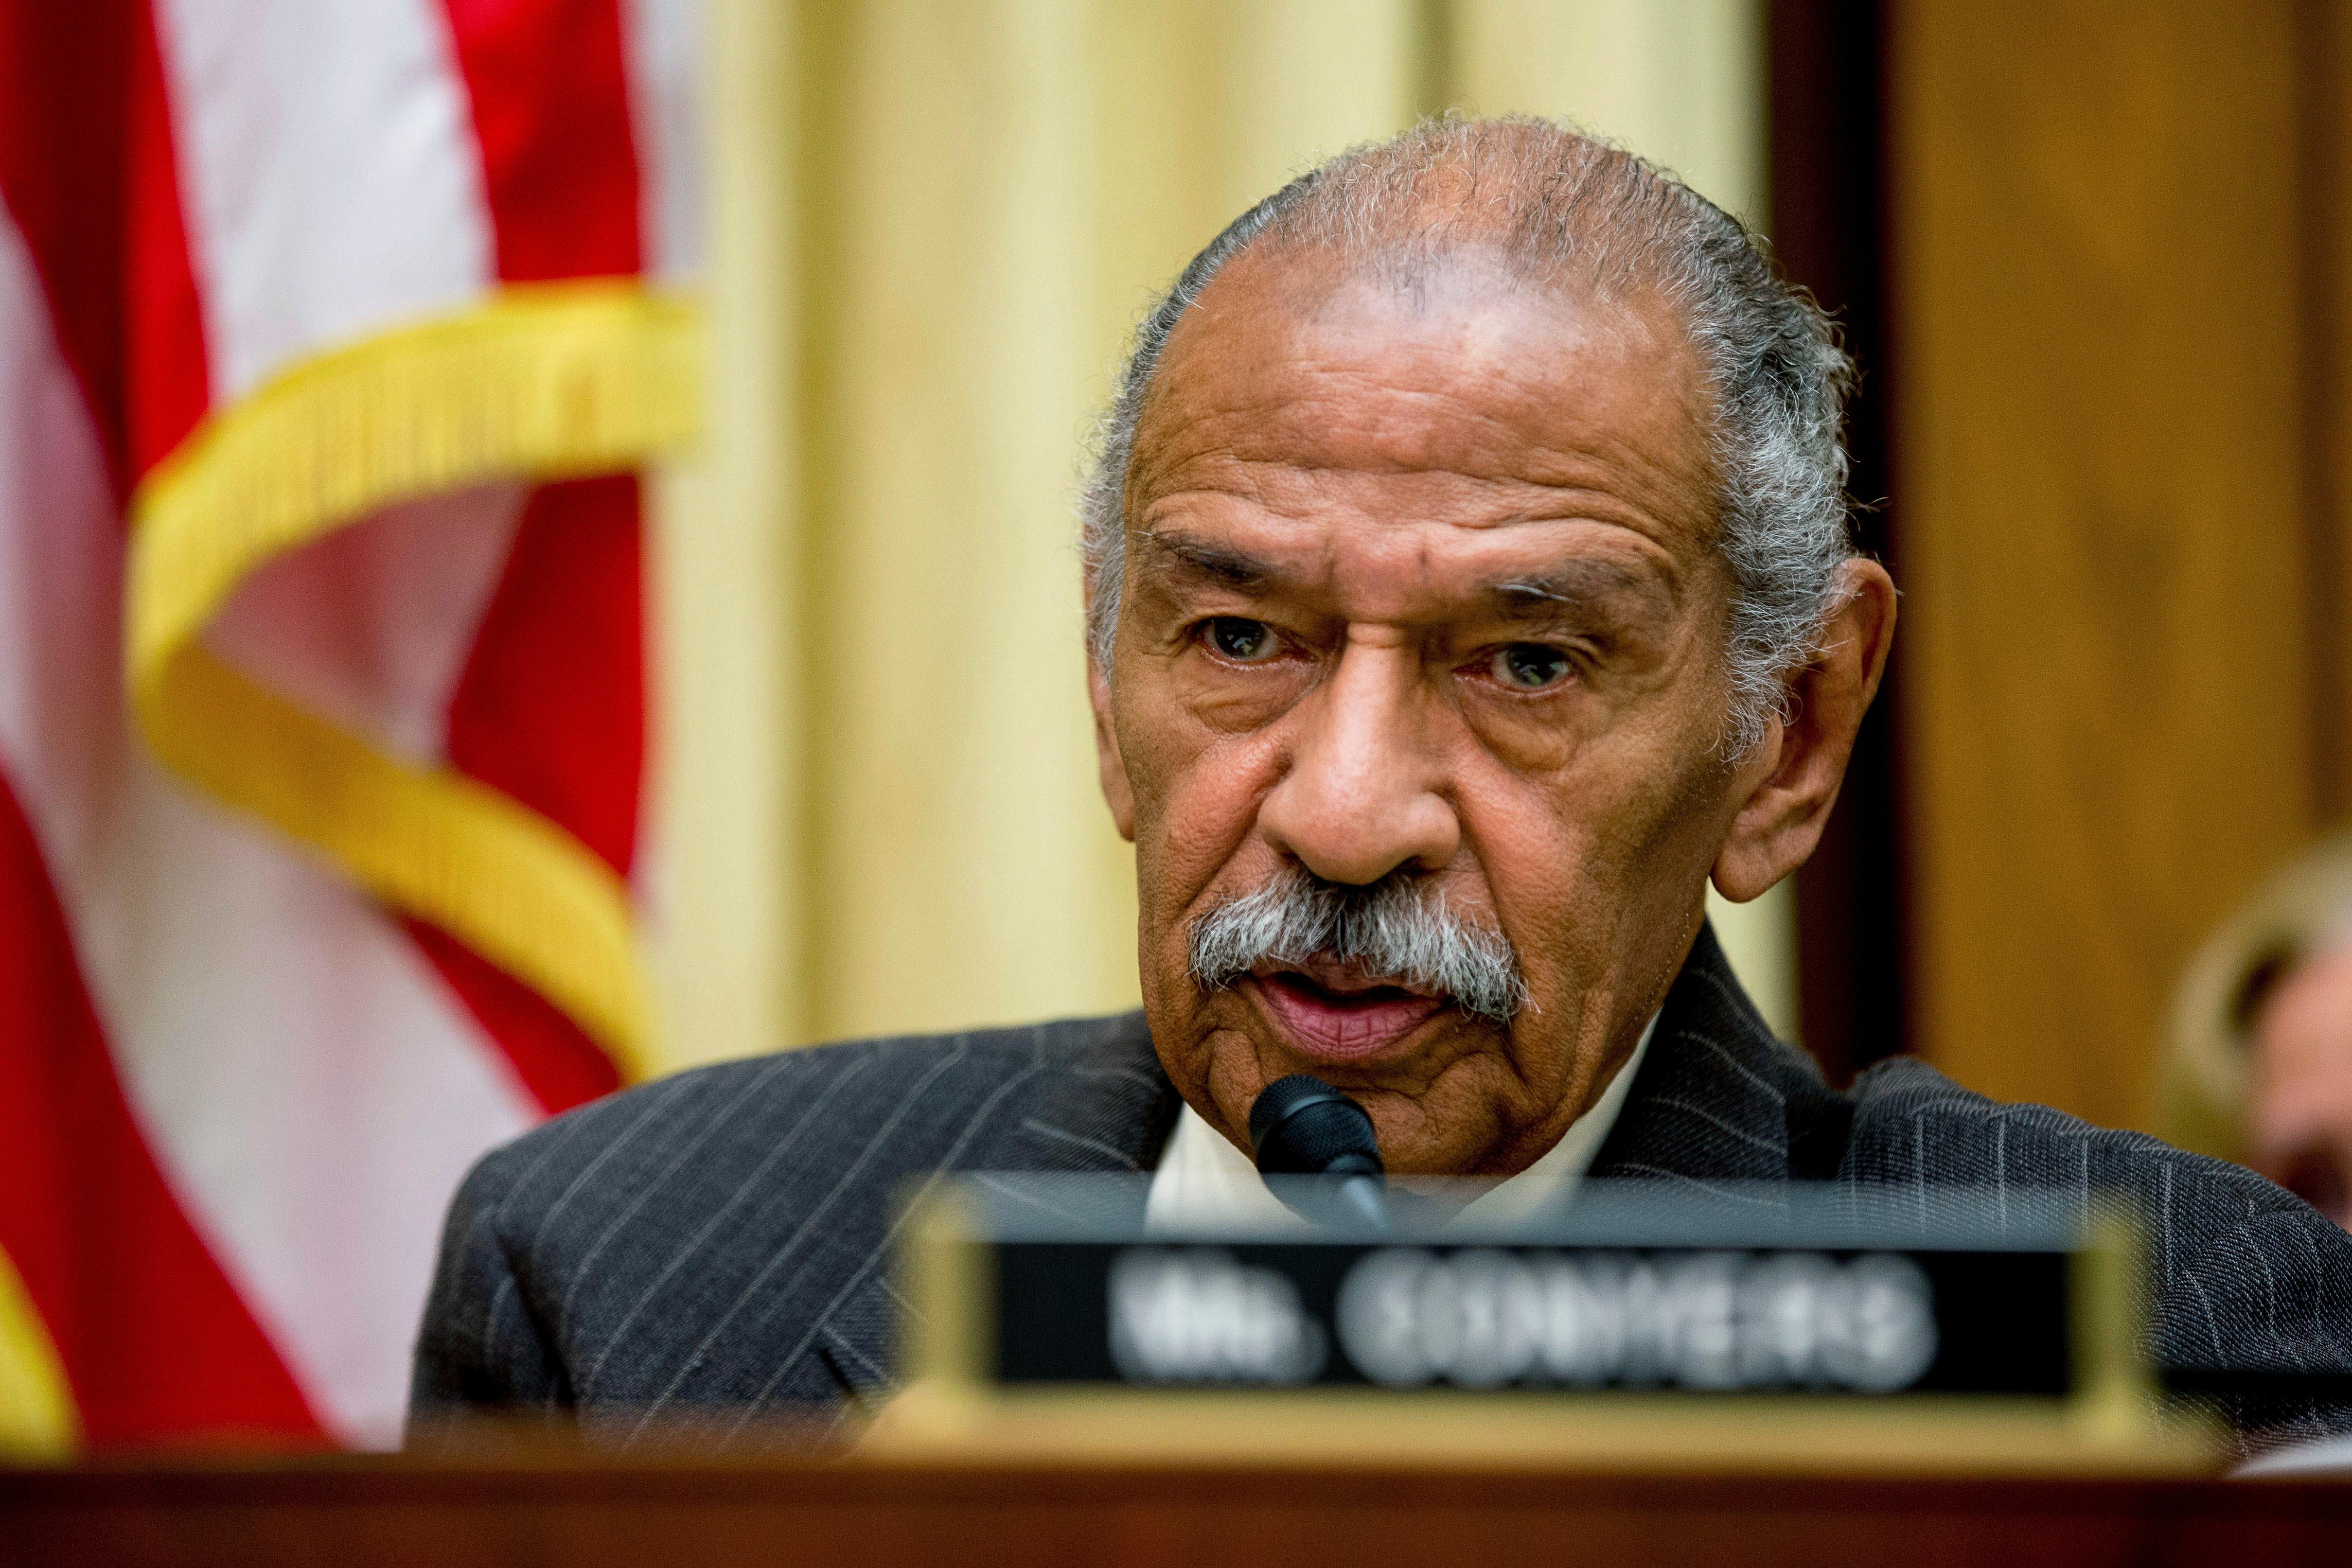 FILE - In this May 24, 2016, file photo, Rep. John Conyers, D-Mich., ranking member on the House Judiciary Committee, speaks on Capitol Hill in Washington during a hearing. (AP Photo/Andrew Harnik, File)